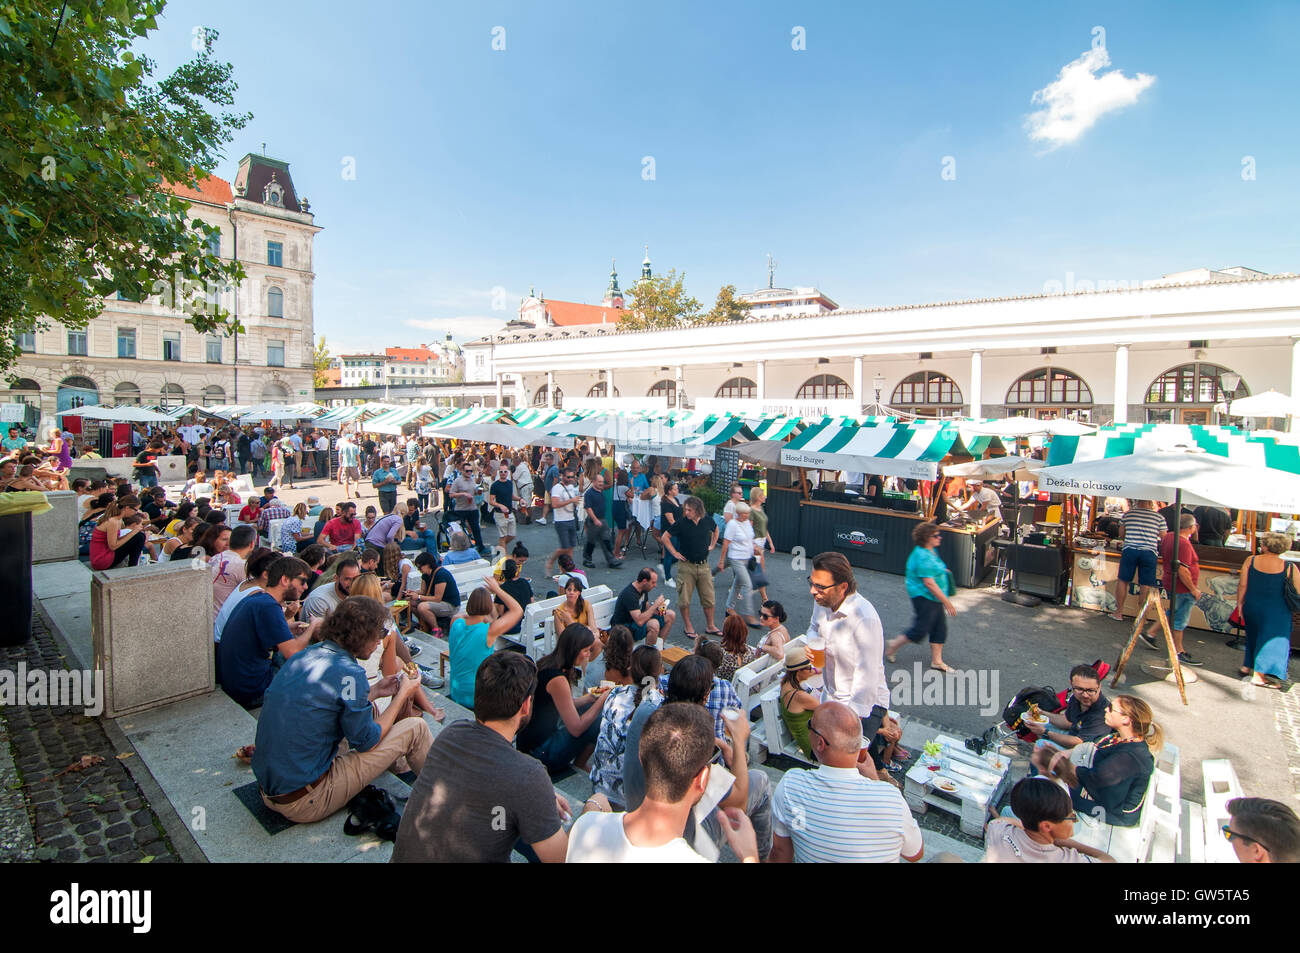 Ljubljana, Slovenia - September 2, 2016 People walking and eating at an Open kitchen, Ljubljana, Slovenia - Stock Image